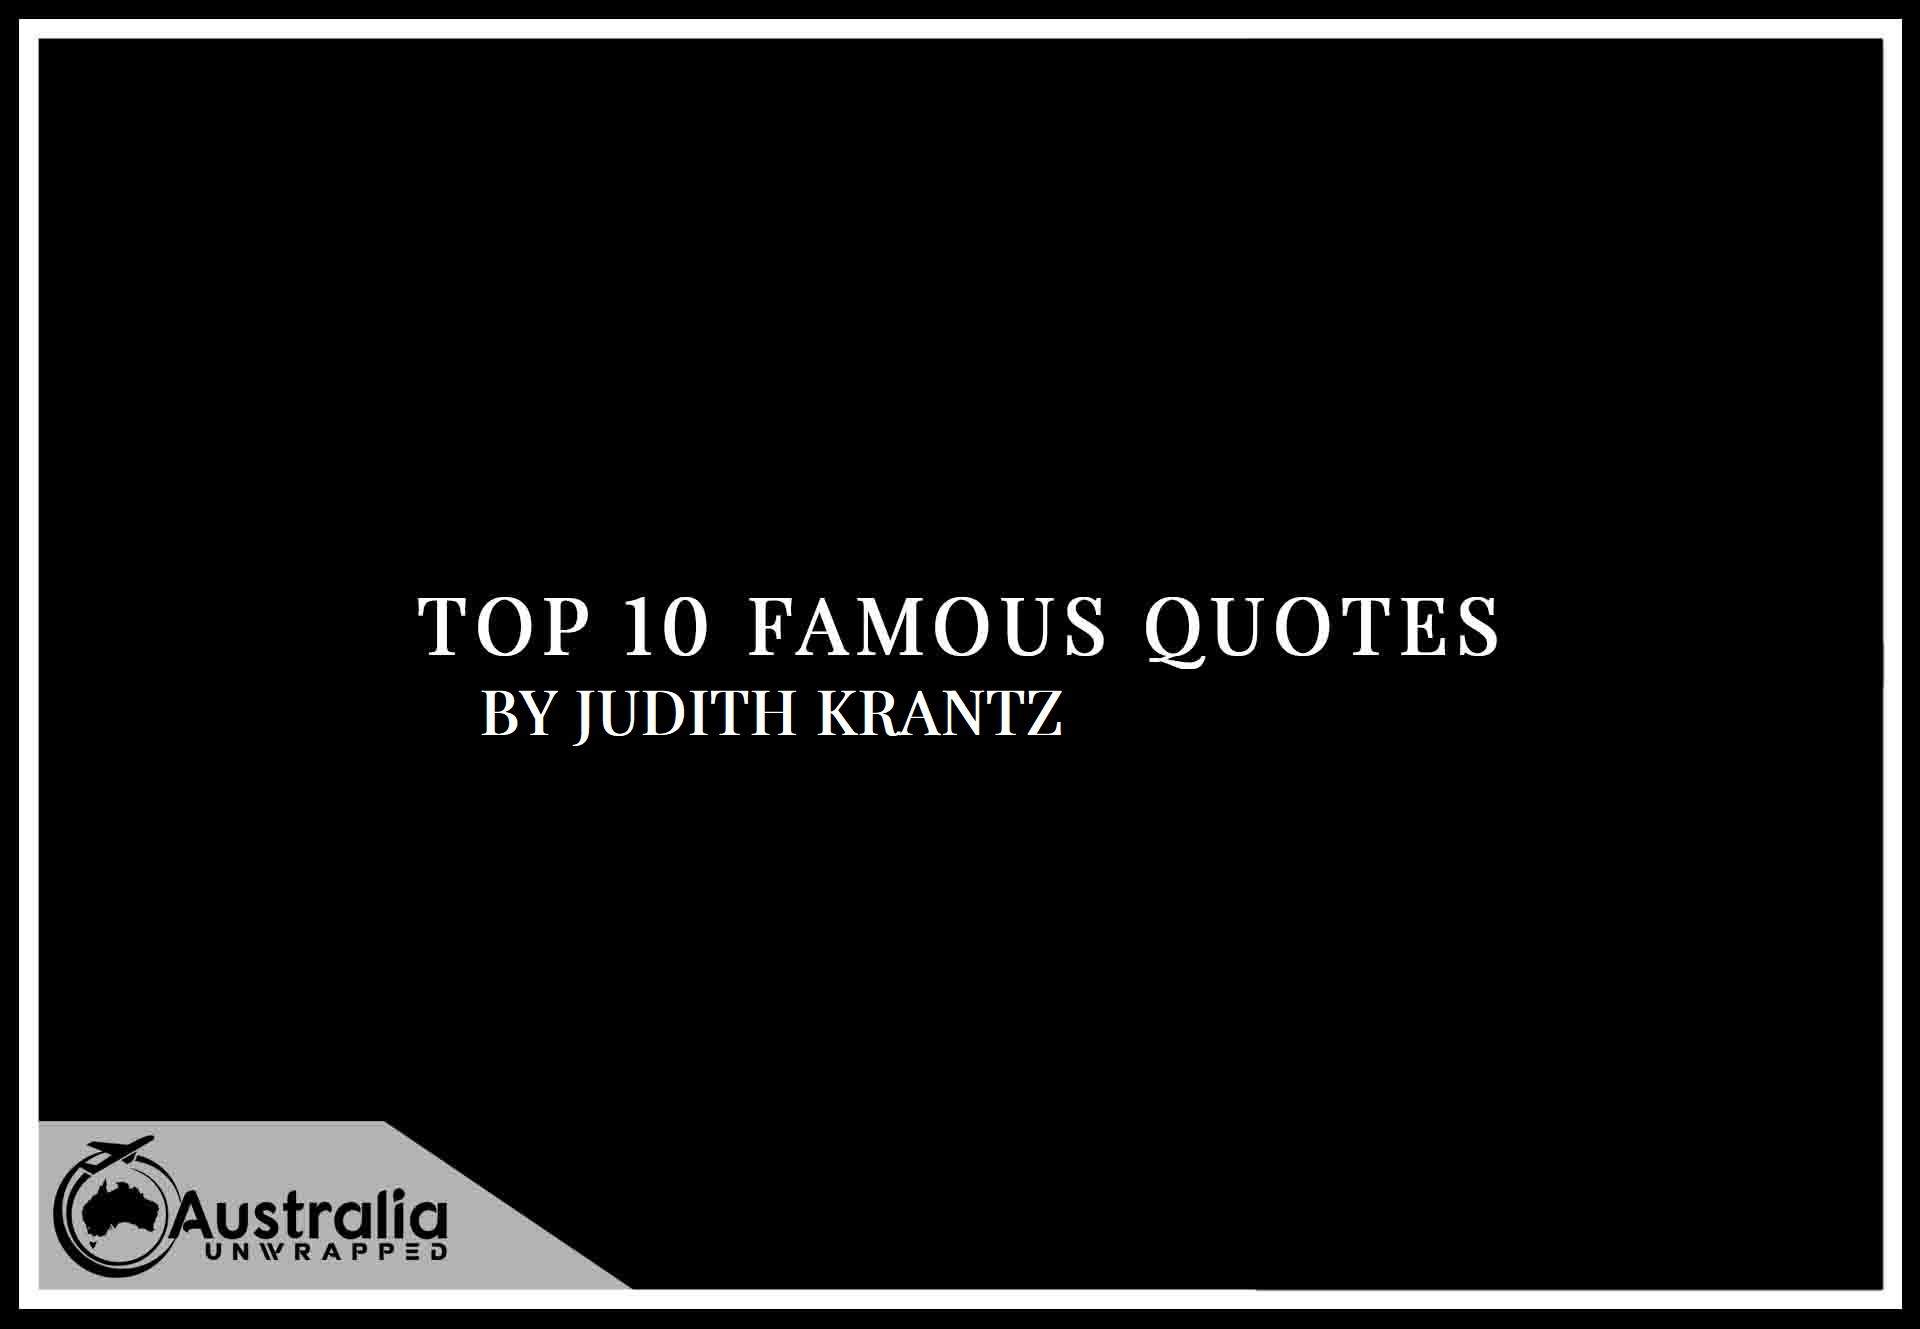 Top 10 Famous Quotes by Author Judith Krantz